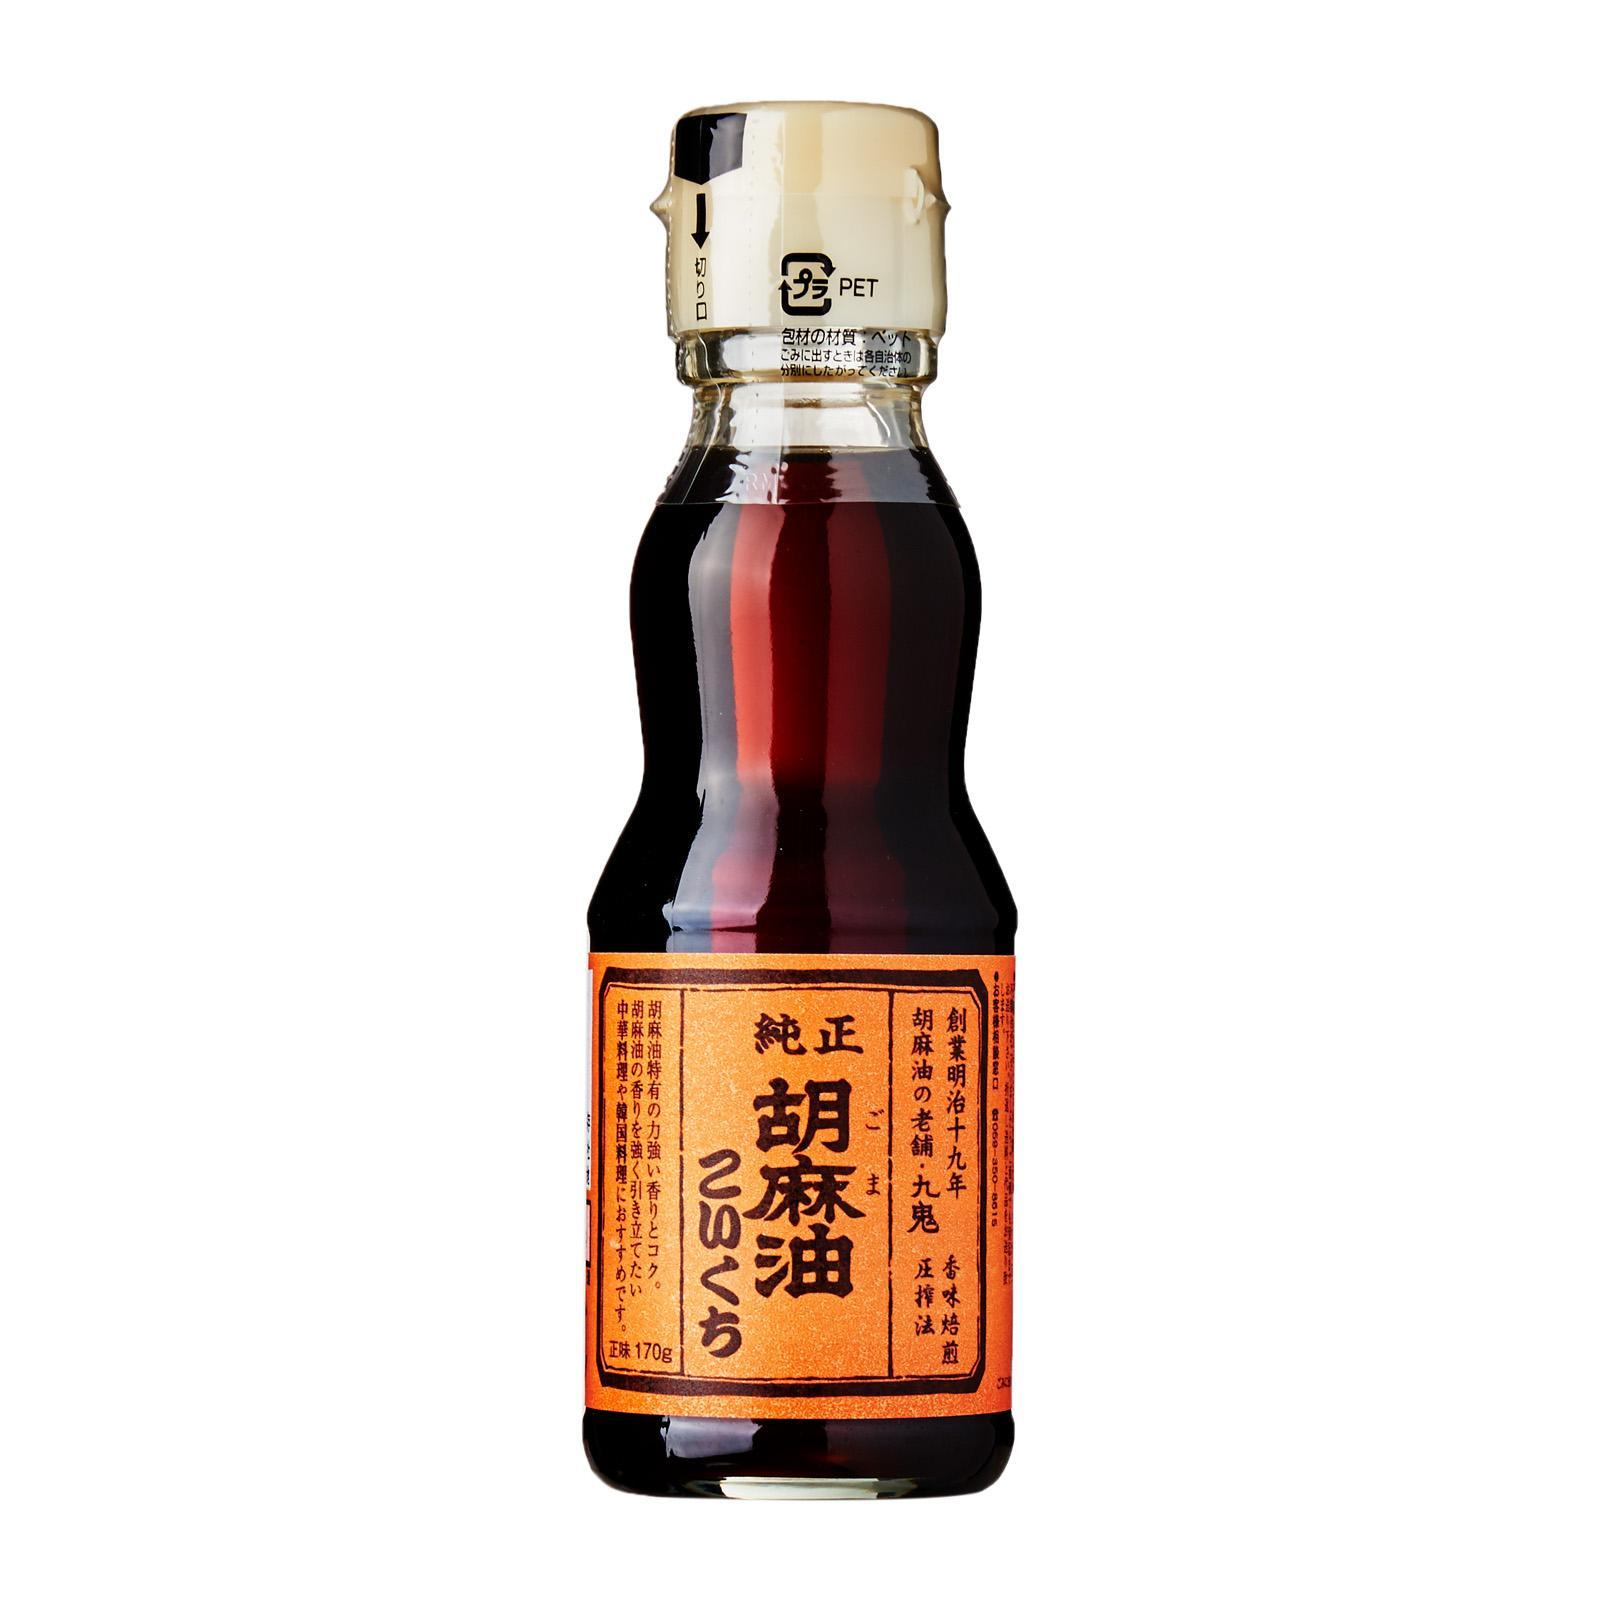 Kuki Kokuichi Pure Roasted Japanese Goma Abura Sesame Oil 170ml - Kirei By Redmart.